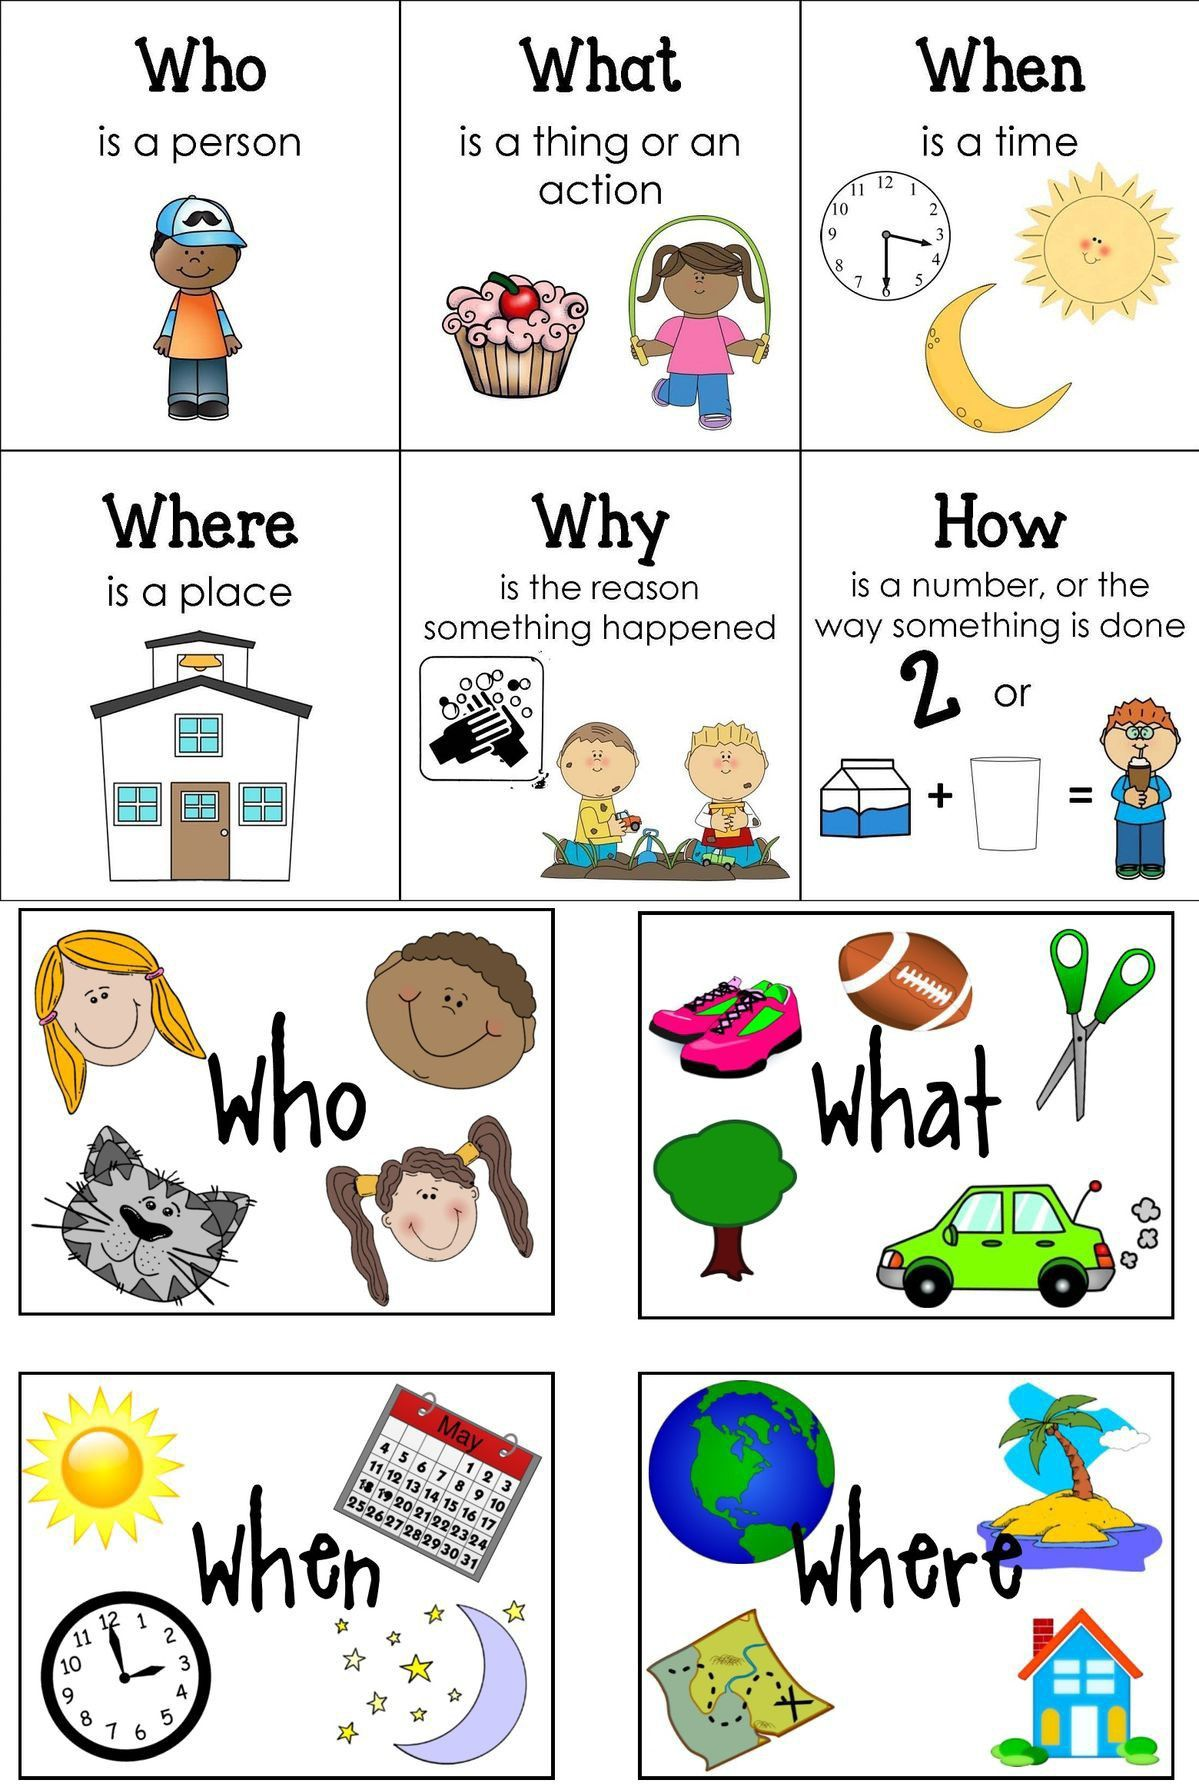 Who Family English Lessons For Kids English Lessons Learn English [ 1790 x 1199 Pixel ]